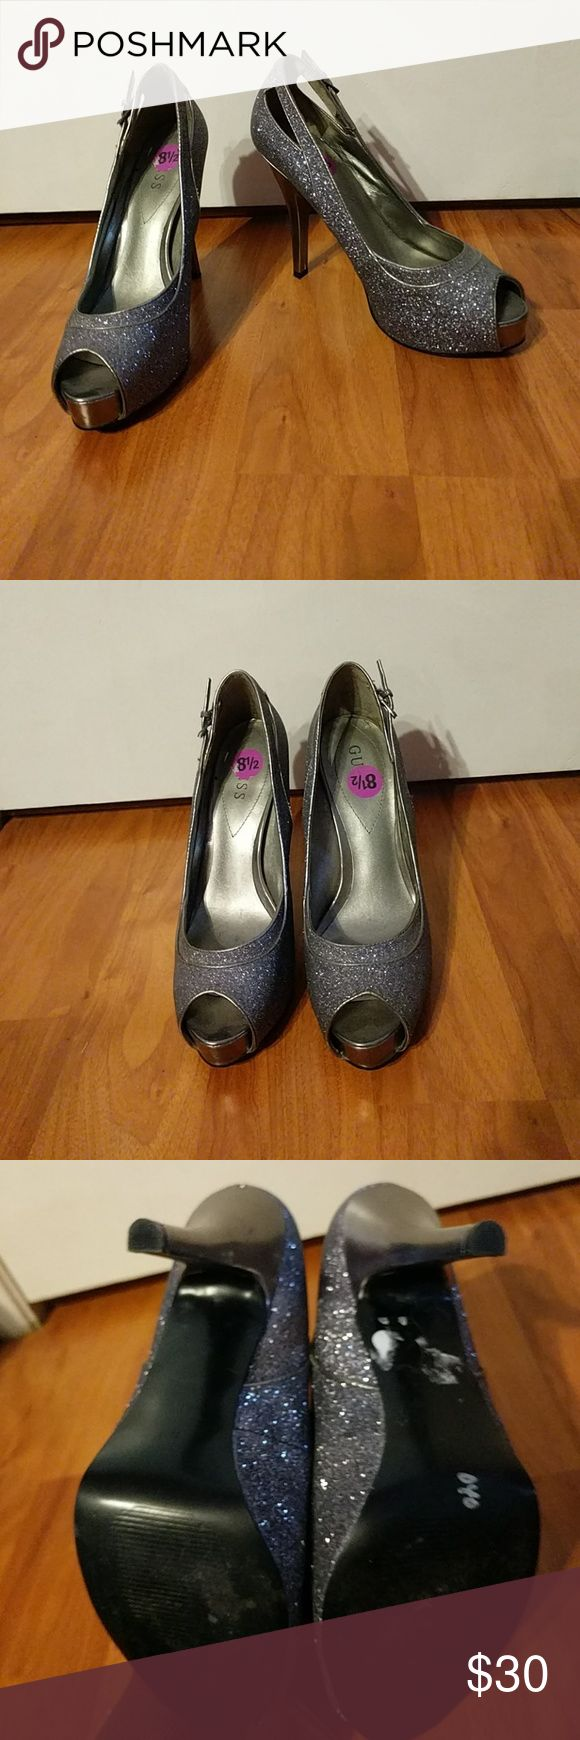 Guess glitter heels Peep toe Guess high heels in a size 8.5. They are a silver glitter with a built in platform and a 5 inch heels. The platform is 1 inch and included in the hell measurements. Guess Shoes Heels